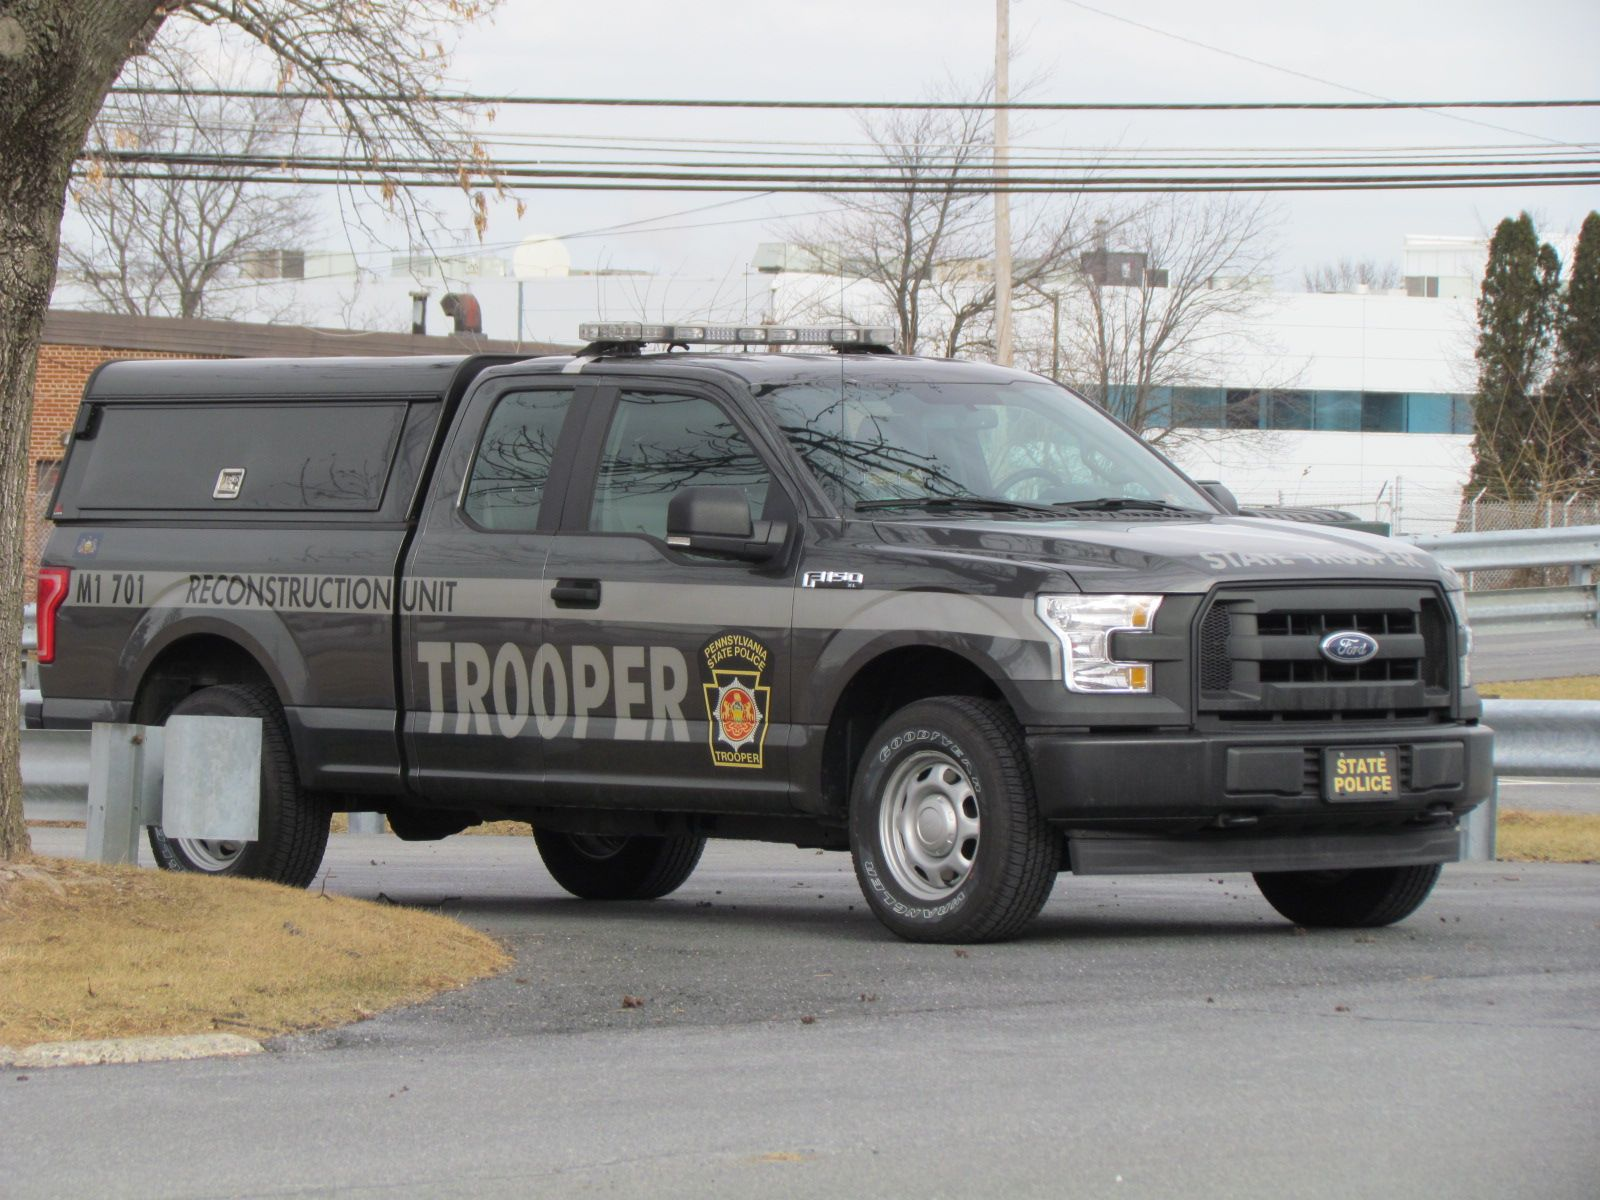 Pennsylvania Pennsylvania State Police Reconstruction Unit Ford F150 Pickup Police Truck Police Cars Ford Police